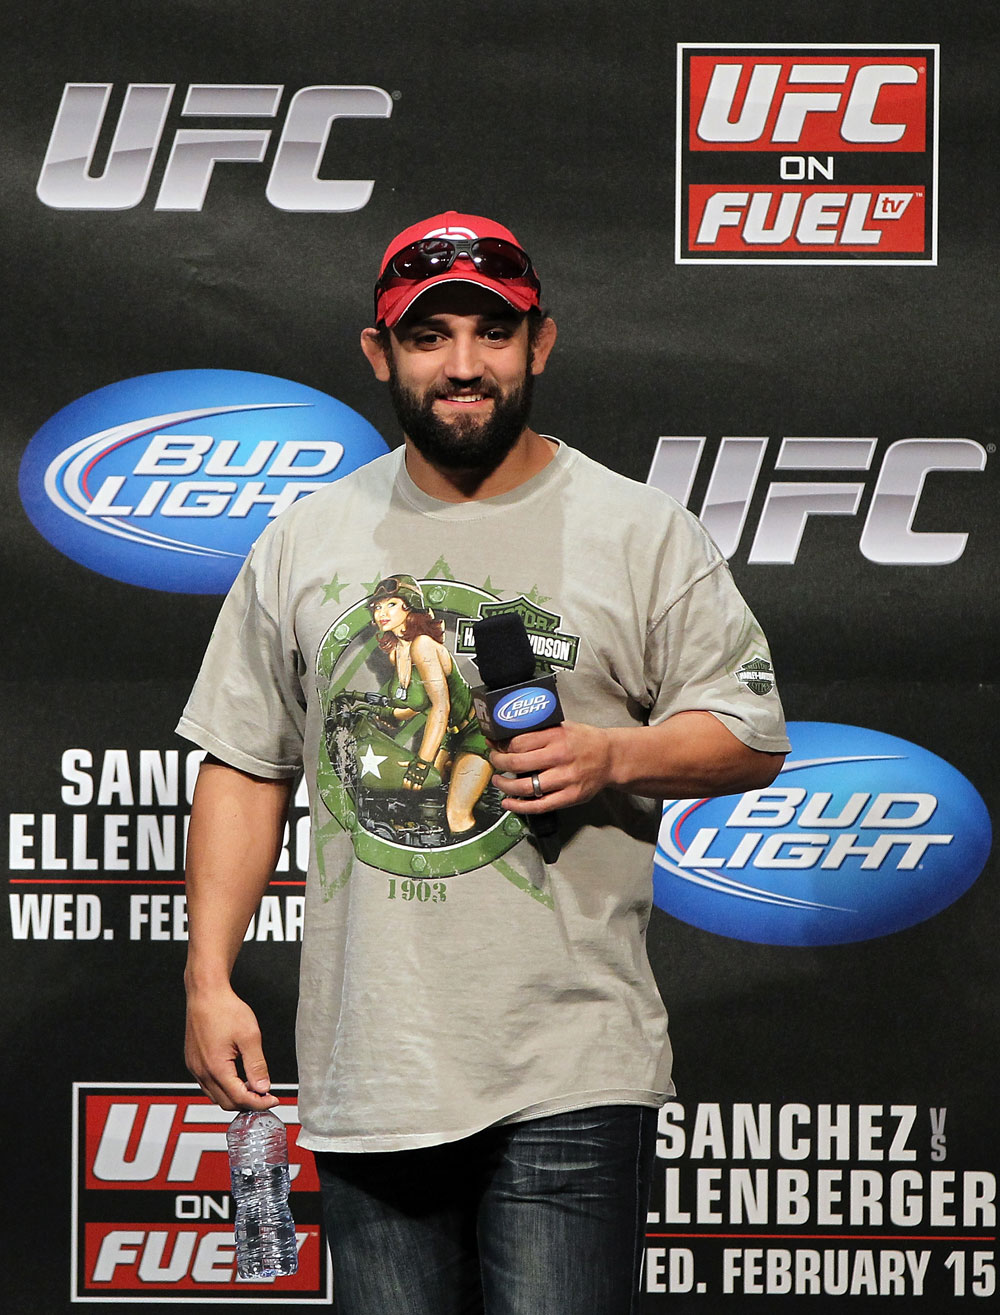 OMAHA, NE - FEBRUARY 14:  UFC fighter Johny Hendricks interacts with fans during a Q&A session before the UFC on FUEL TV weigh in event at Omaha Civic Auditorium on February 14, 2012 in Omaha, Nebraska.  (Photo by Josh Hedges/Zuffa LLC/Zuffa LLC via Getty Images) *** Local Caption *** Johny Hendricks